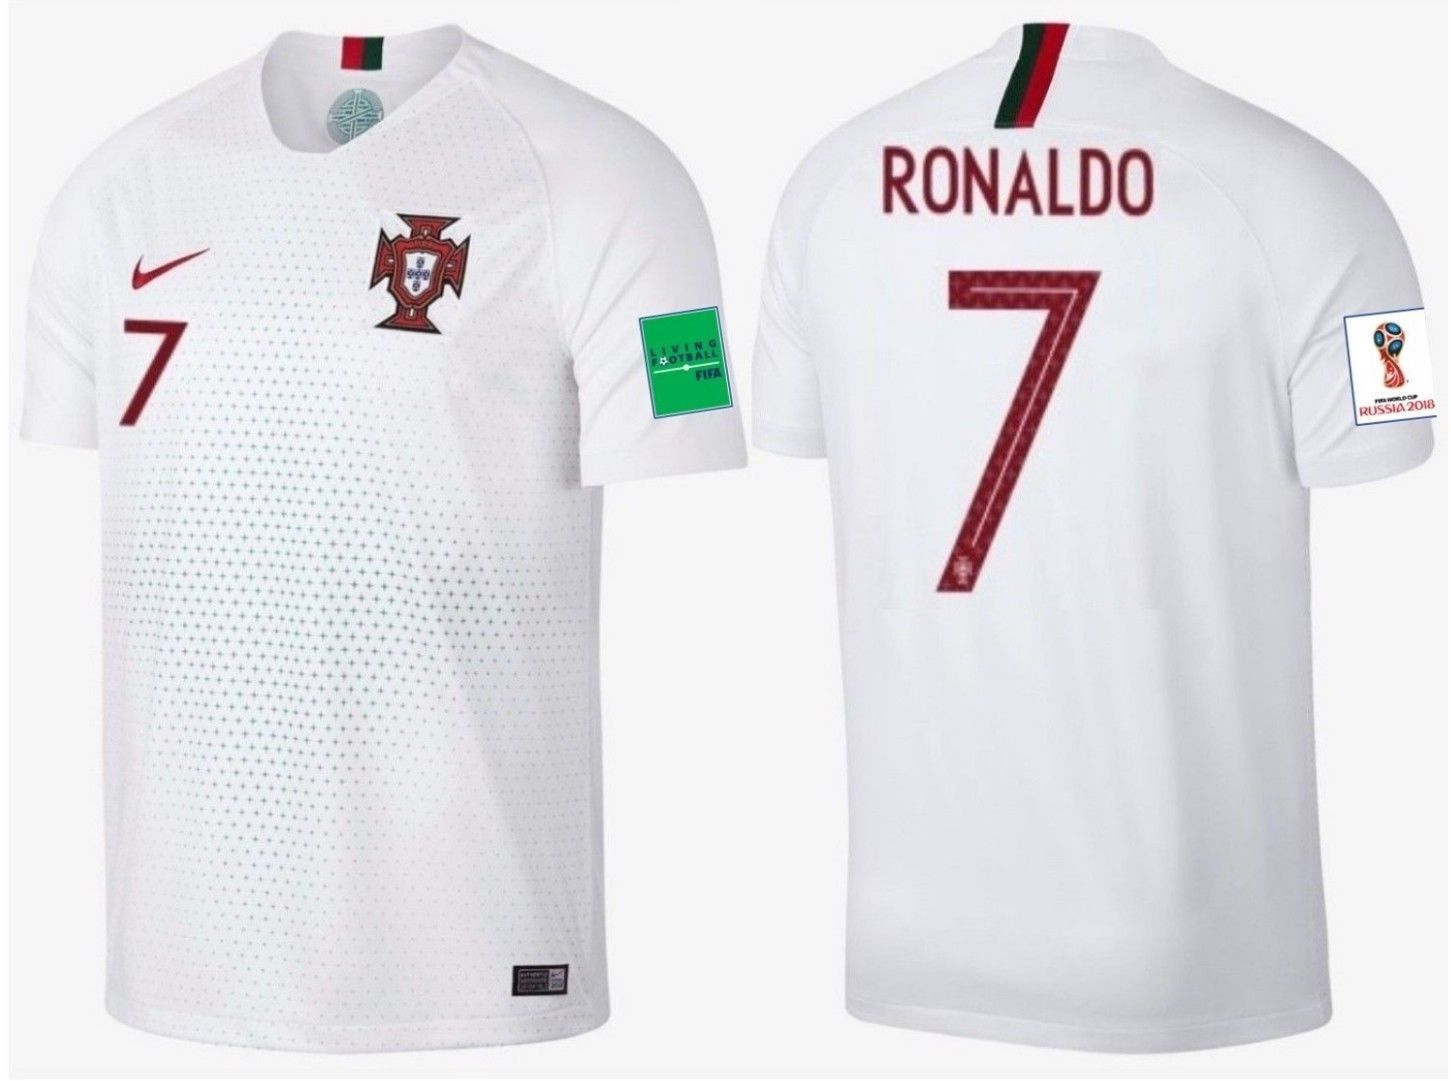 64fc12795 Nike Cristiano Ronaldo Portugal Away Jersey and similar items. S l1600